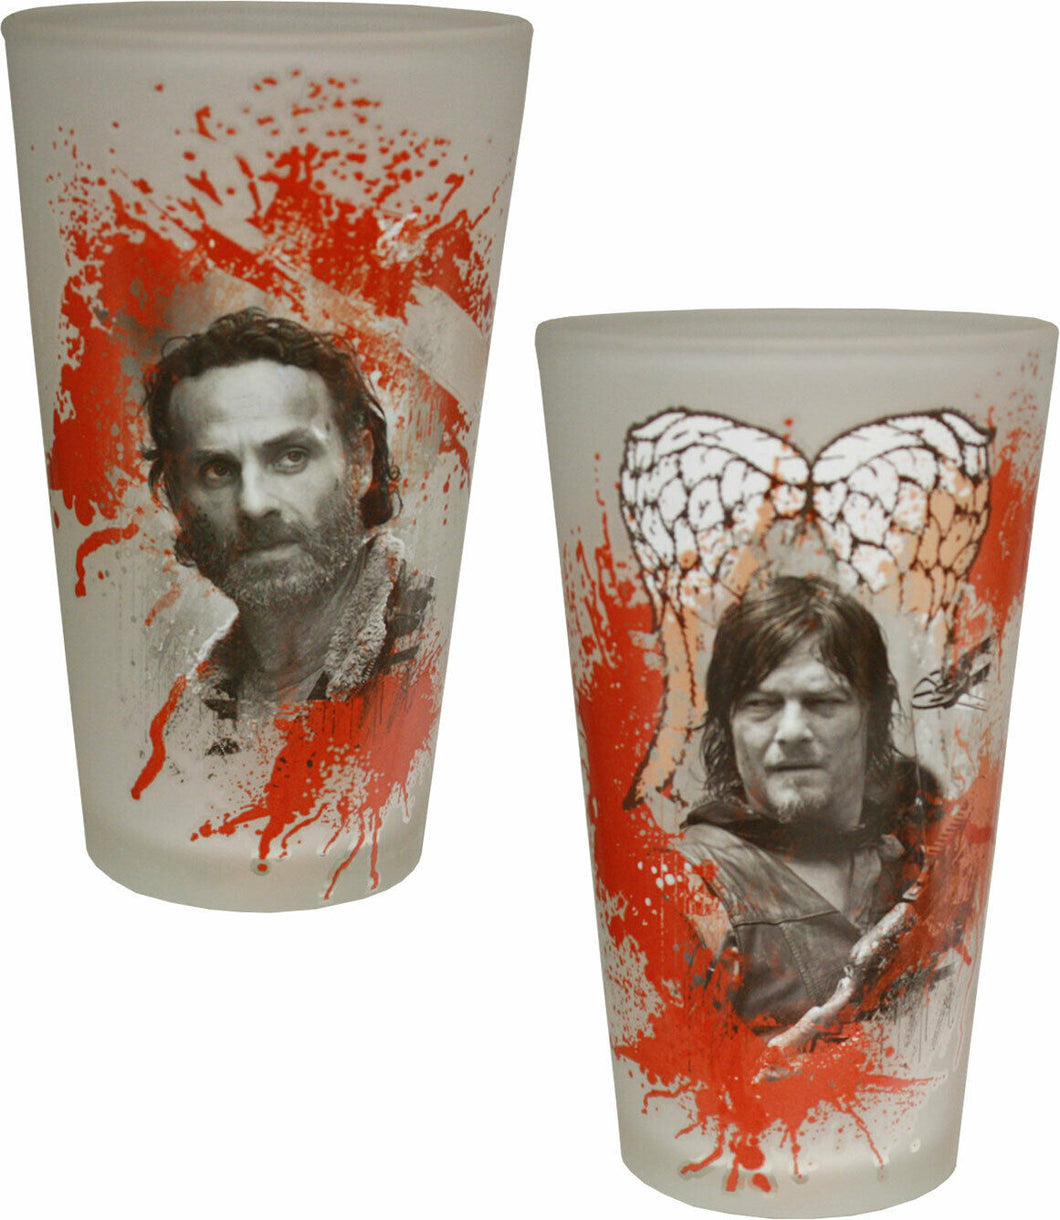 AMC The Walking Dead Rick Grimes & Daryl Dixon Set of 2 Bloody Pint Glasses, 16oz